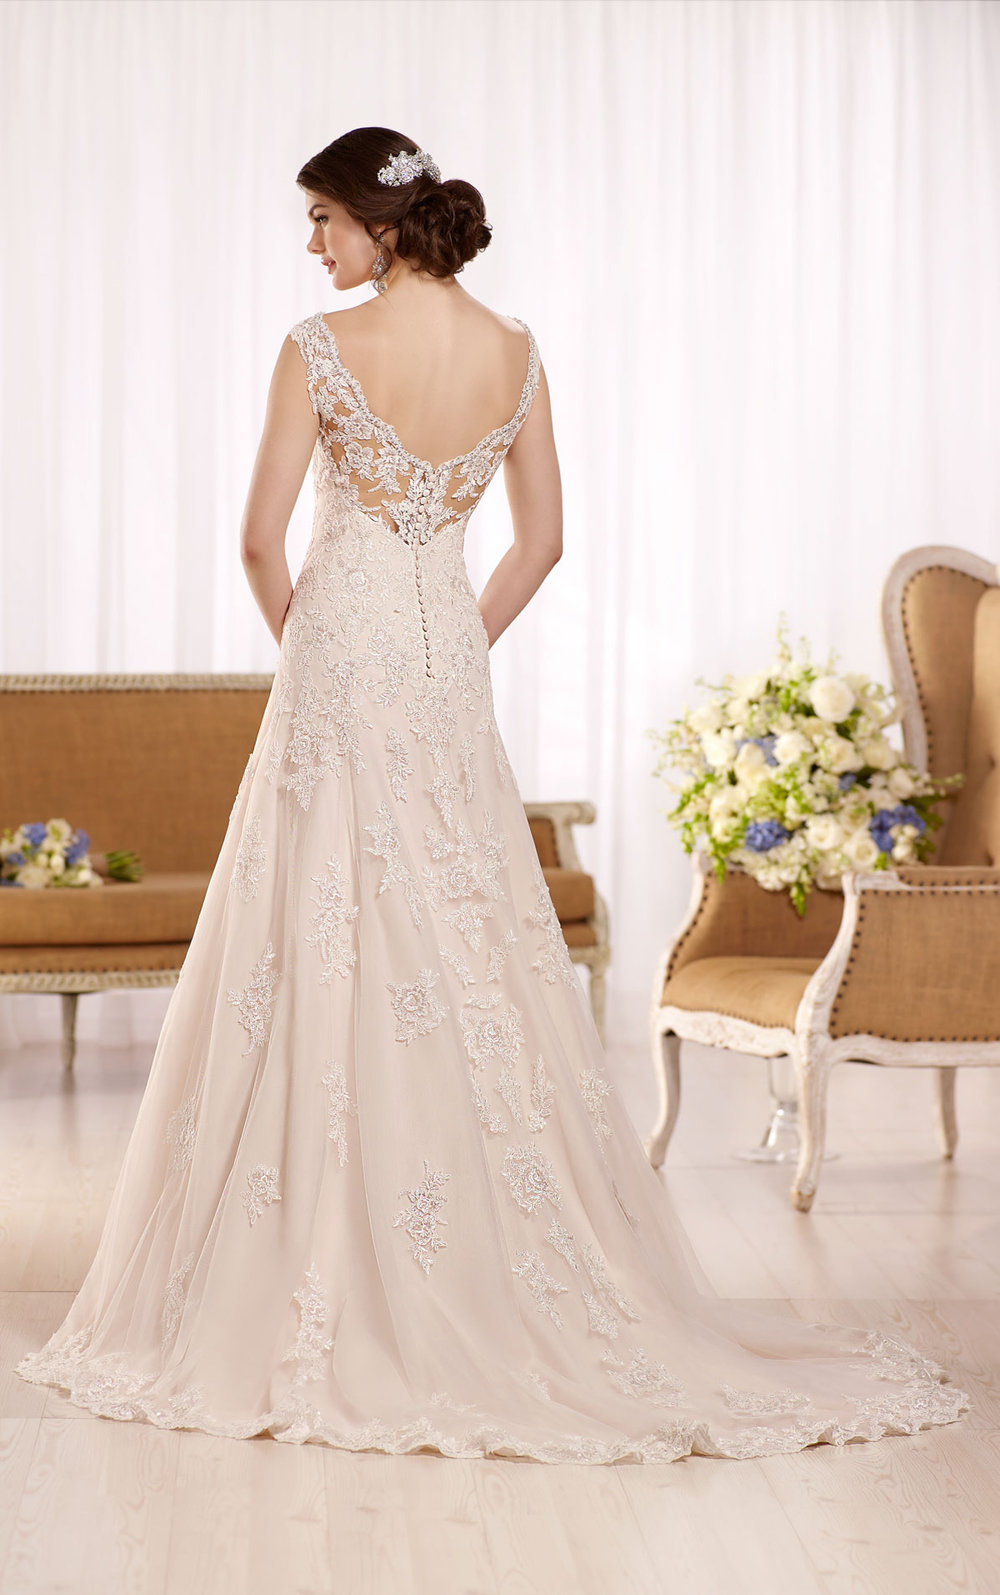 A line wedding dress with embellished sweet heart neckline